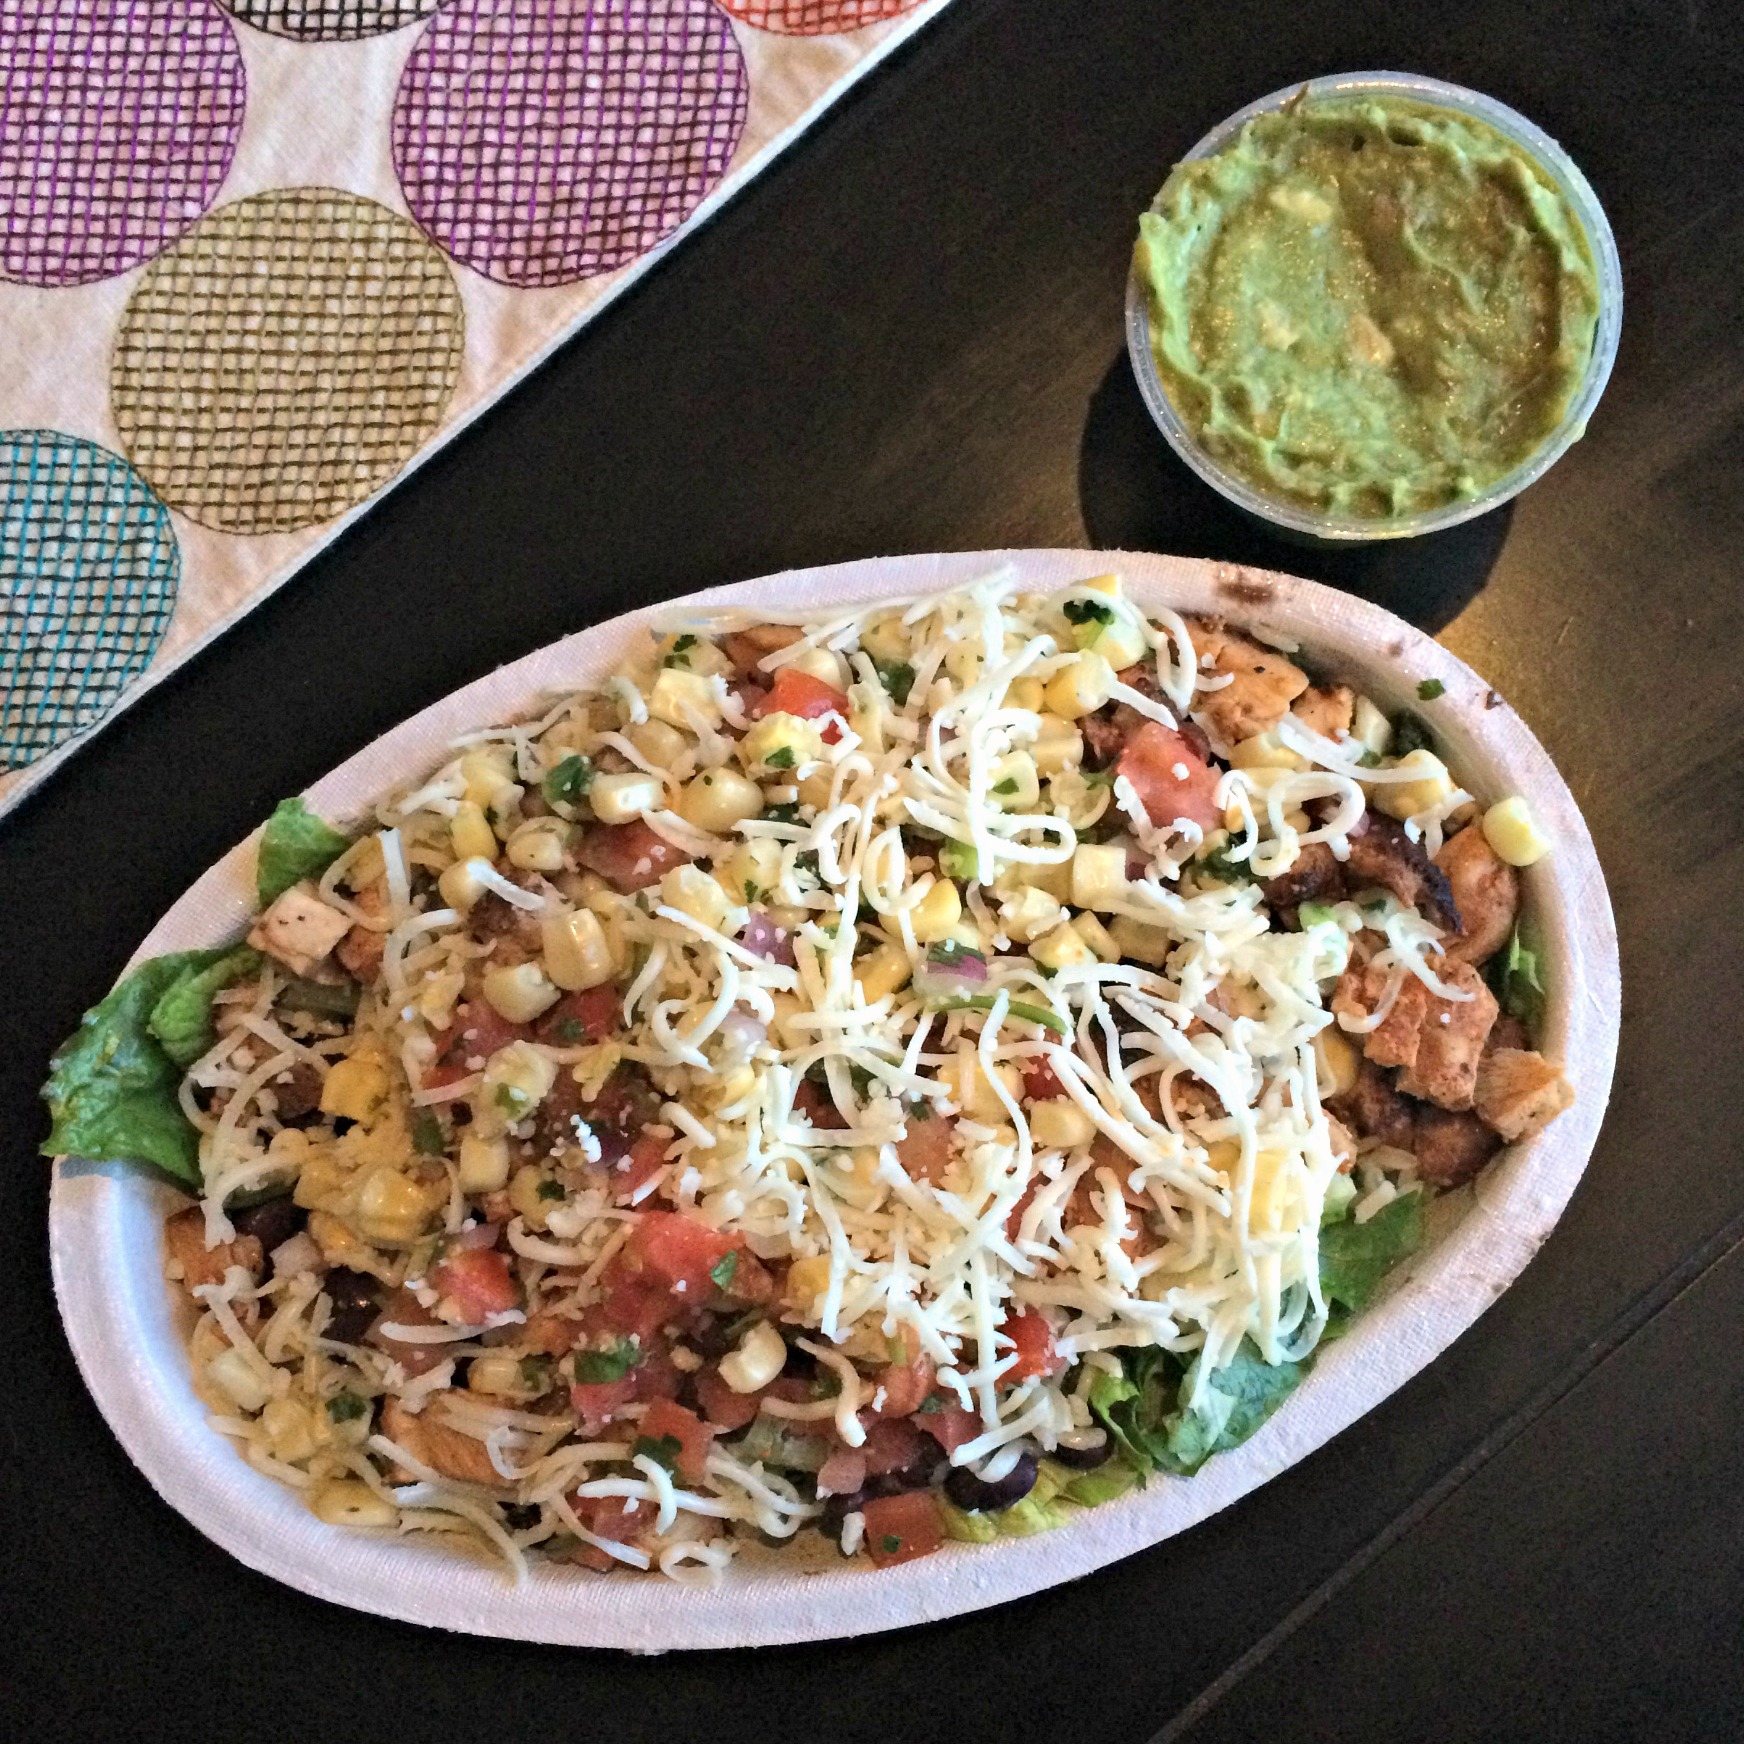 chipotle salad with chicken and guacamole